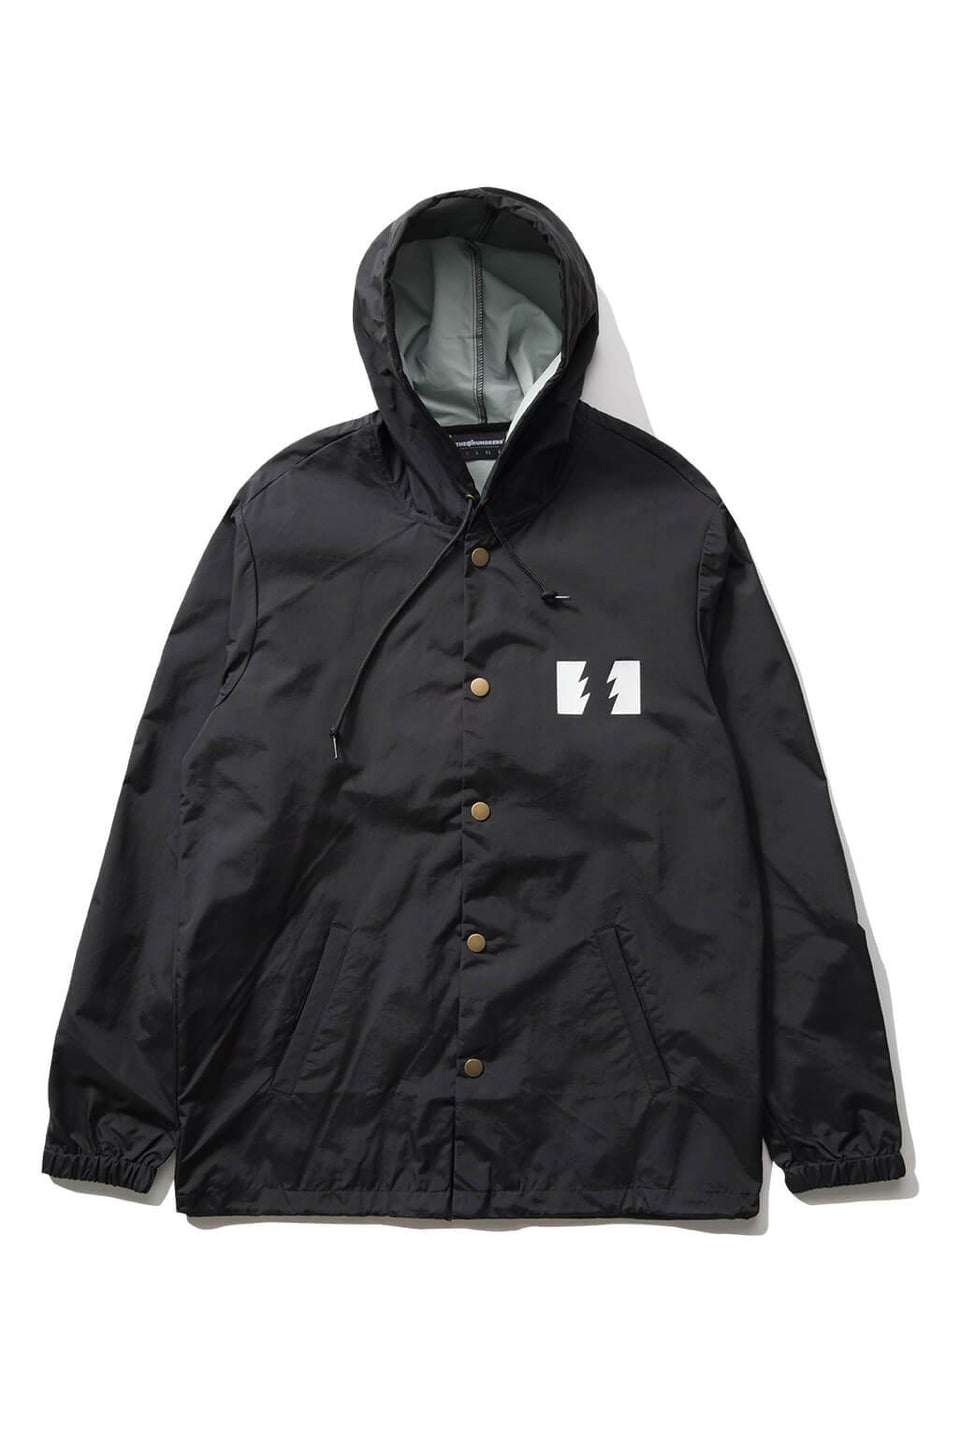 The Hundreds Forever Slant Hooded Coach's Jacket Black Front